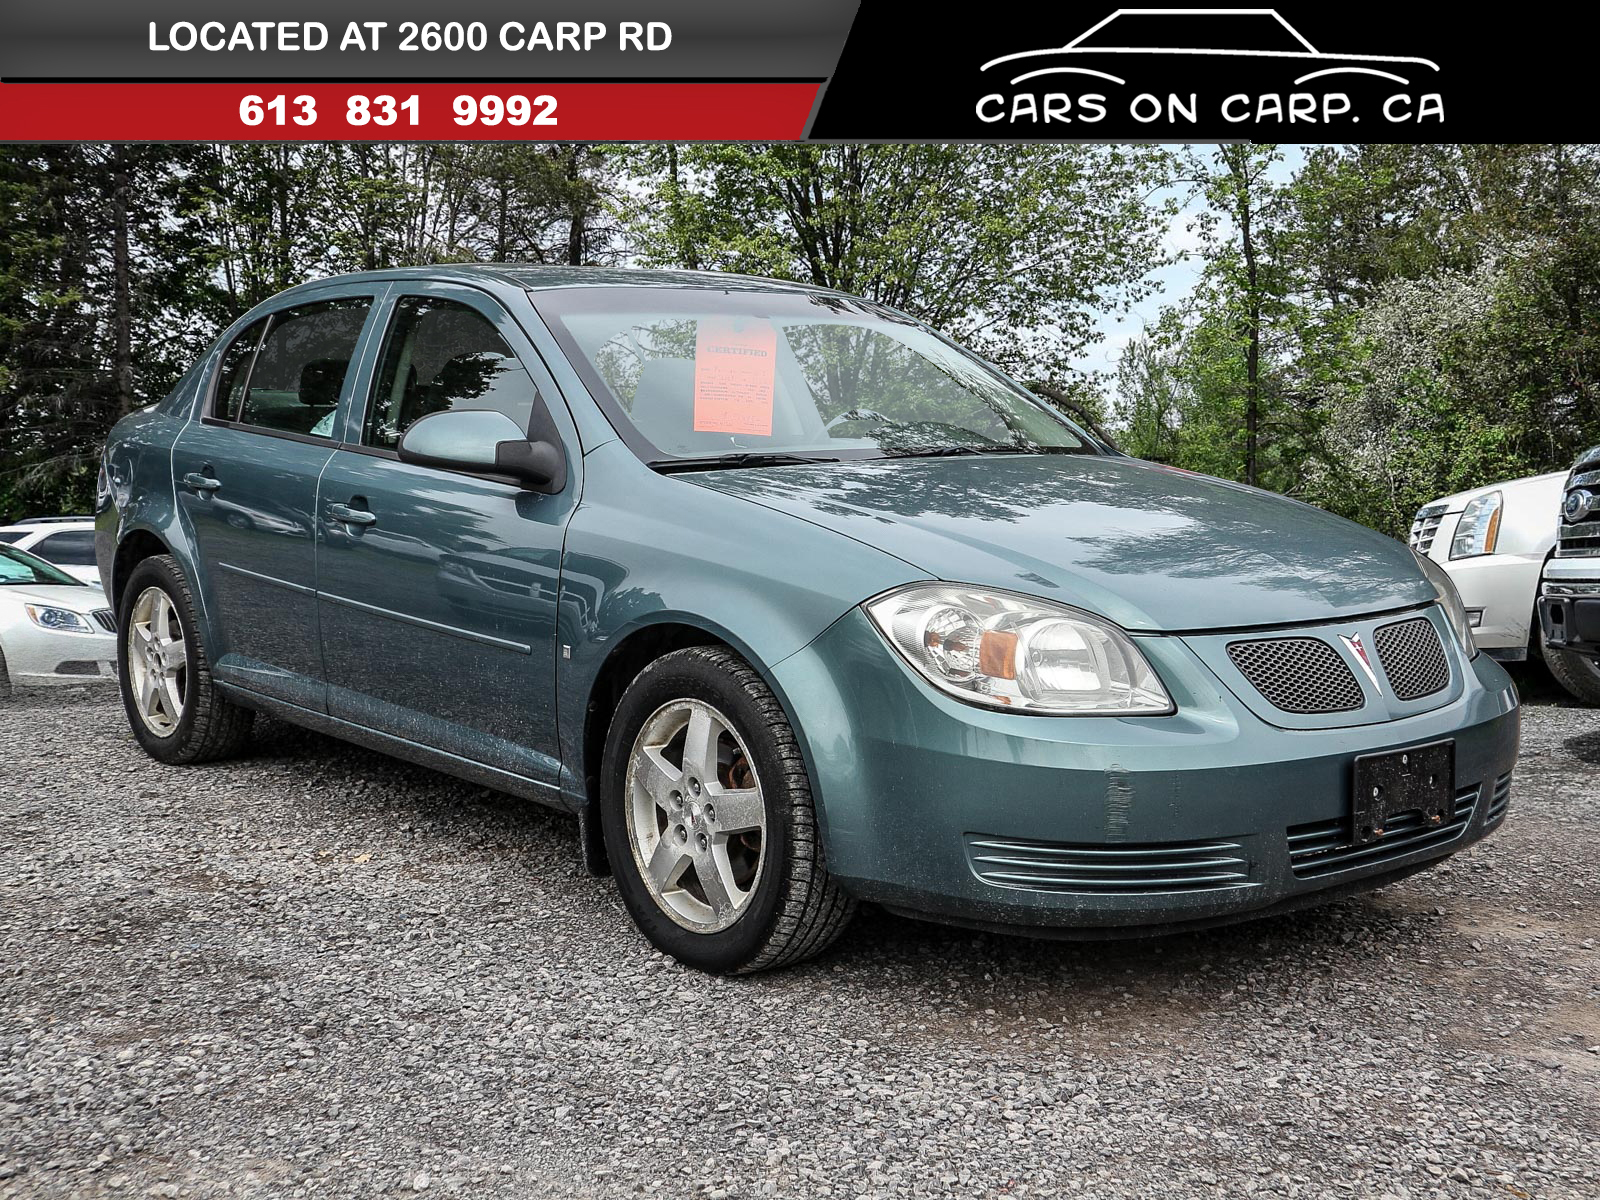 Used 2009 Pontiac Pursuit in Ottawa,ON